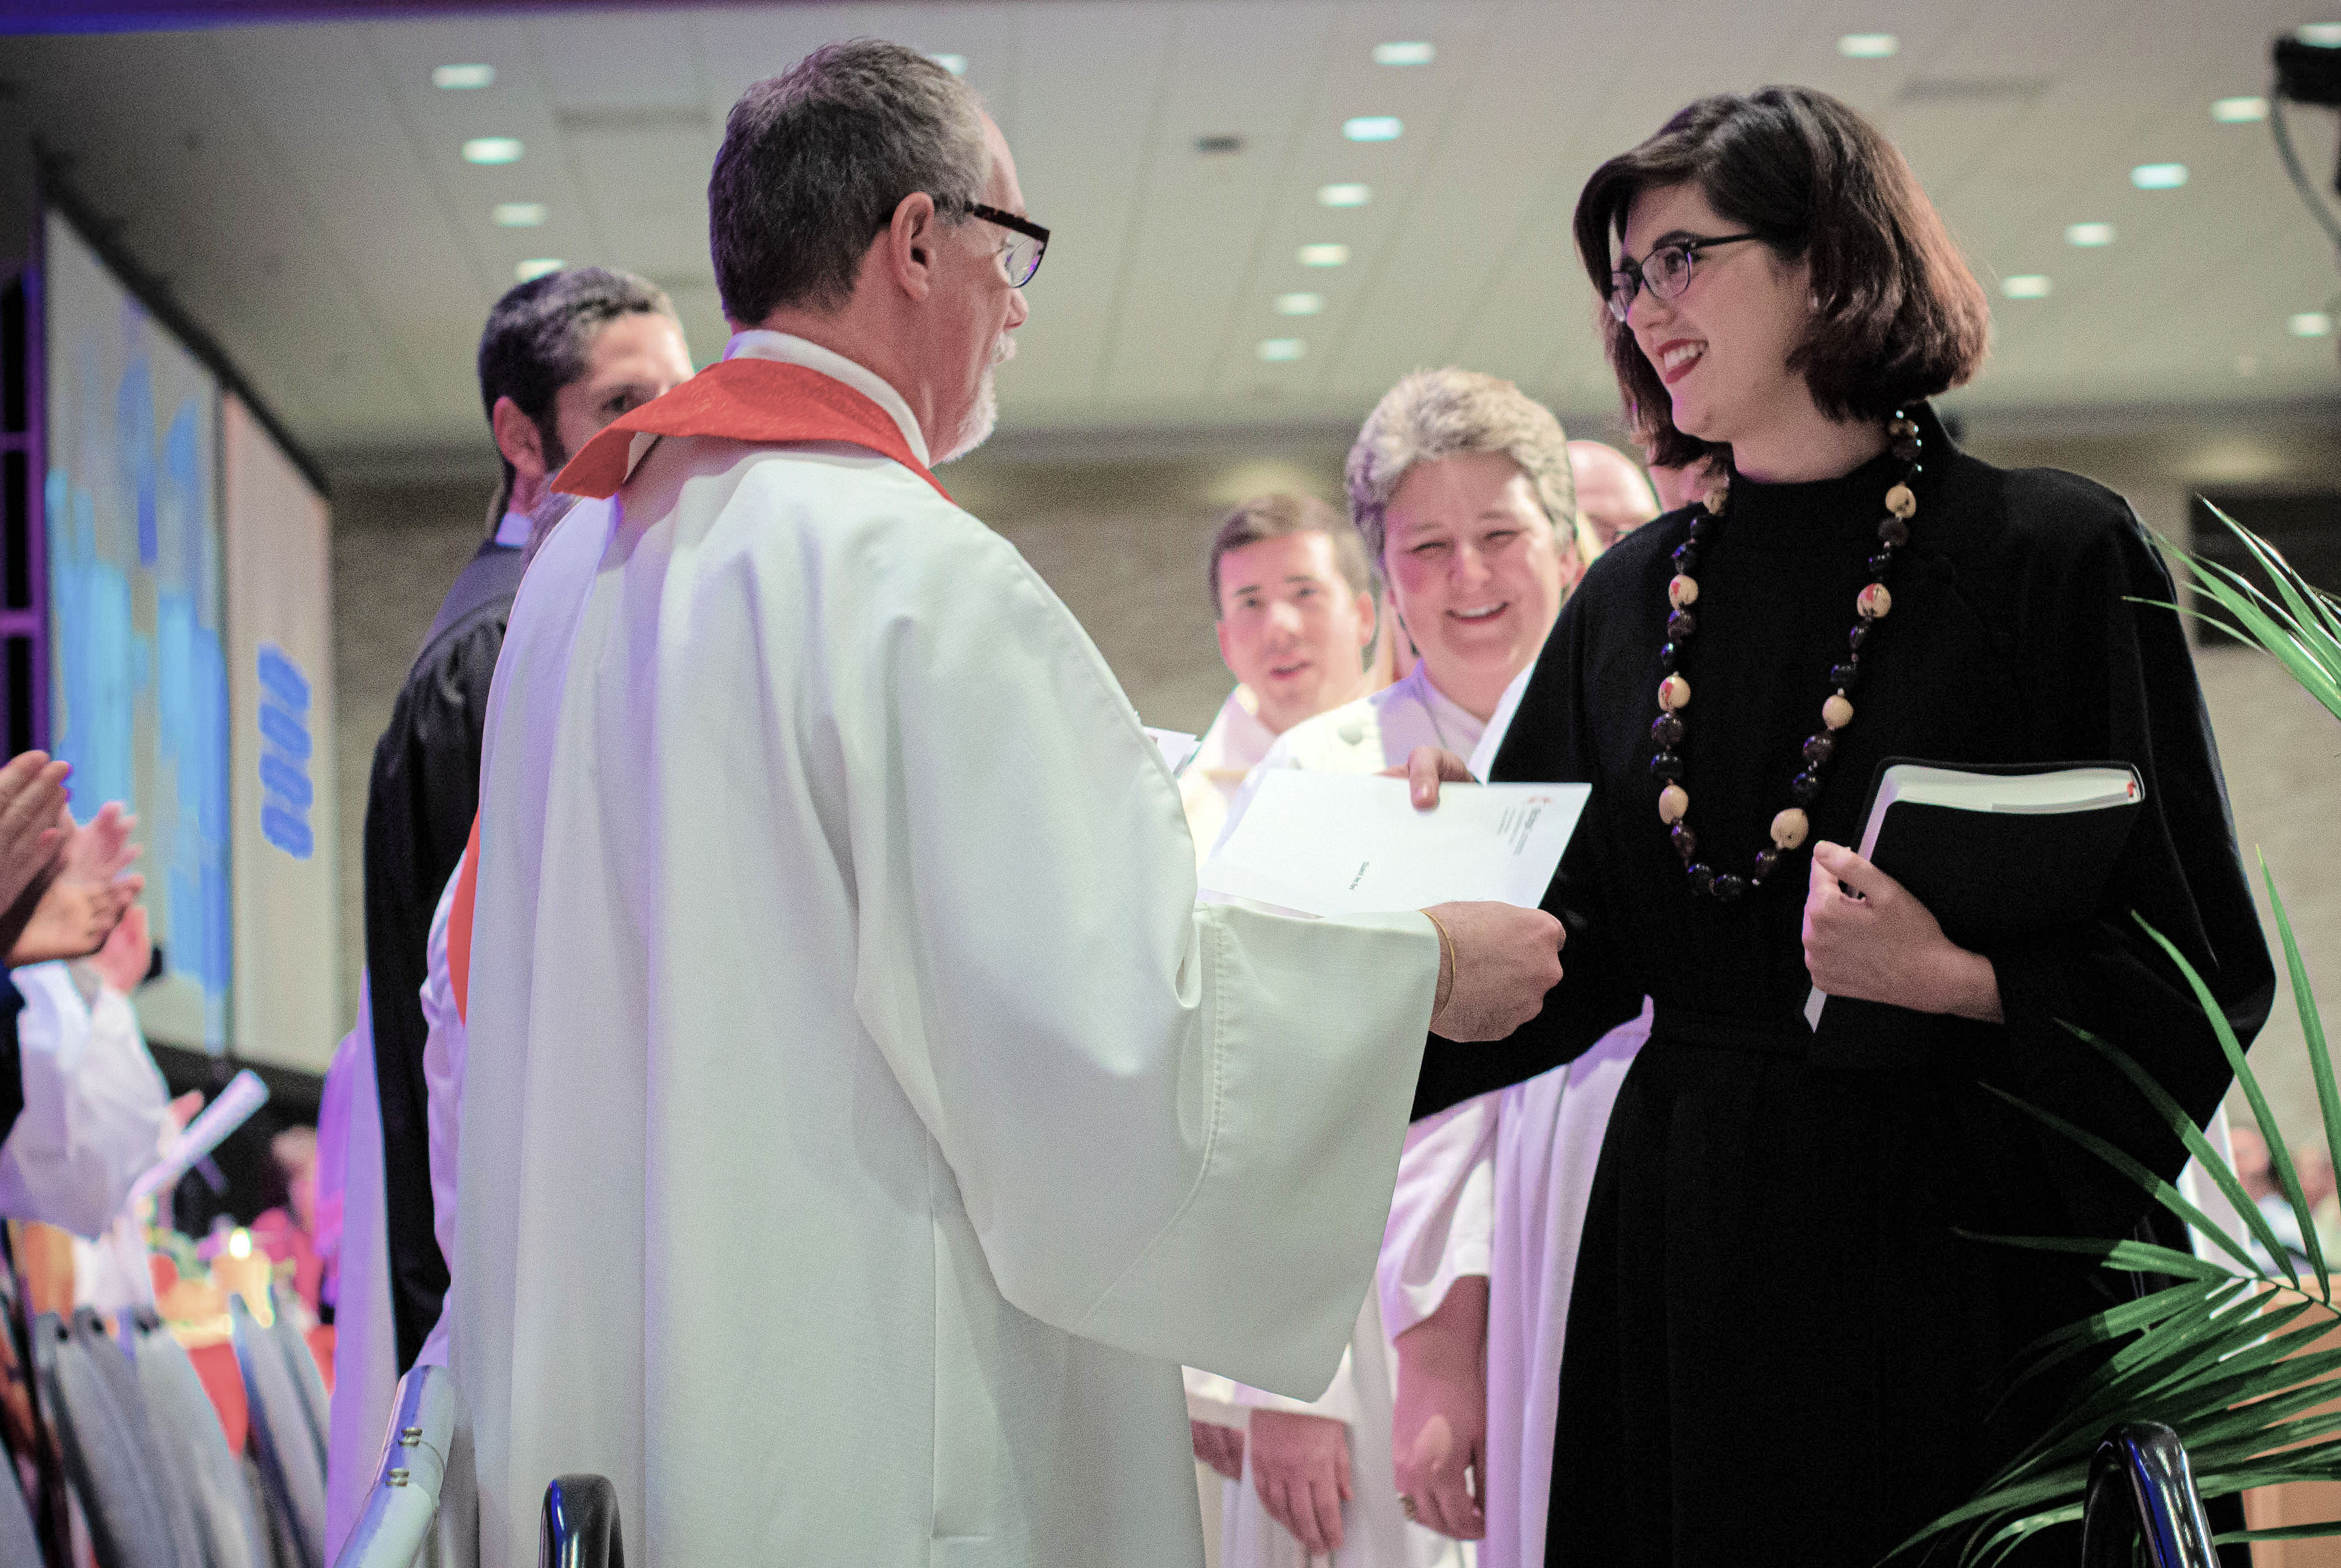 June 2, 2019 was a time to celebrate newly commissioned clergy.